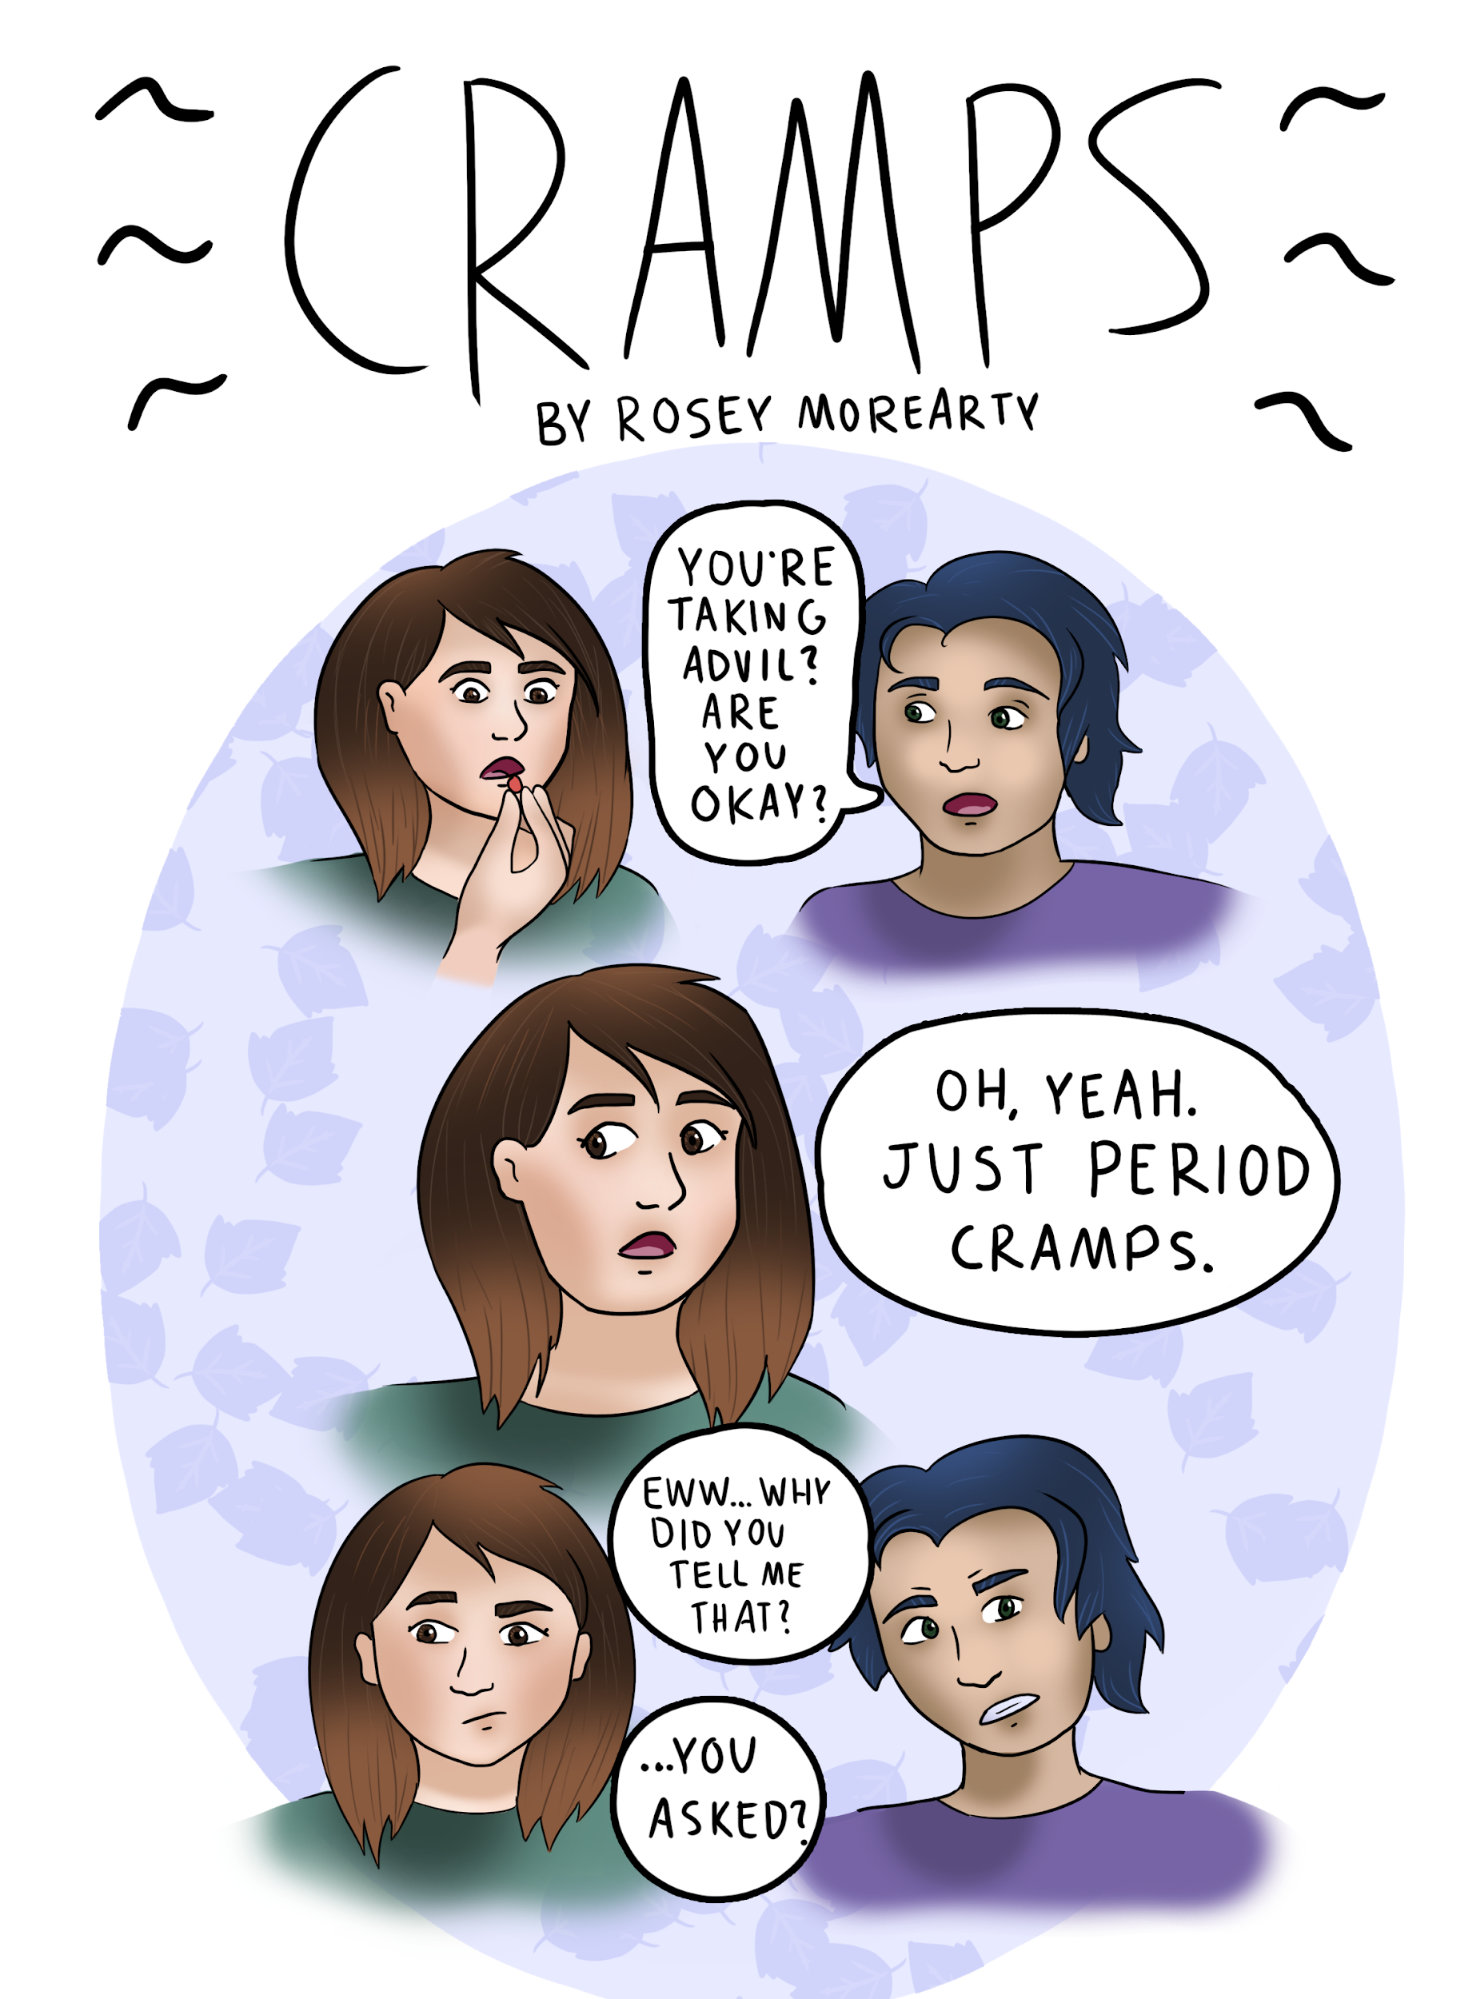 Cartoon Cramps The Aggie